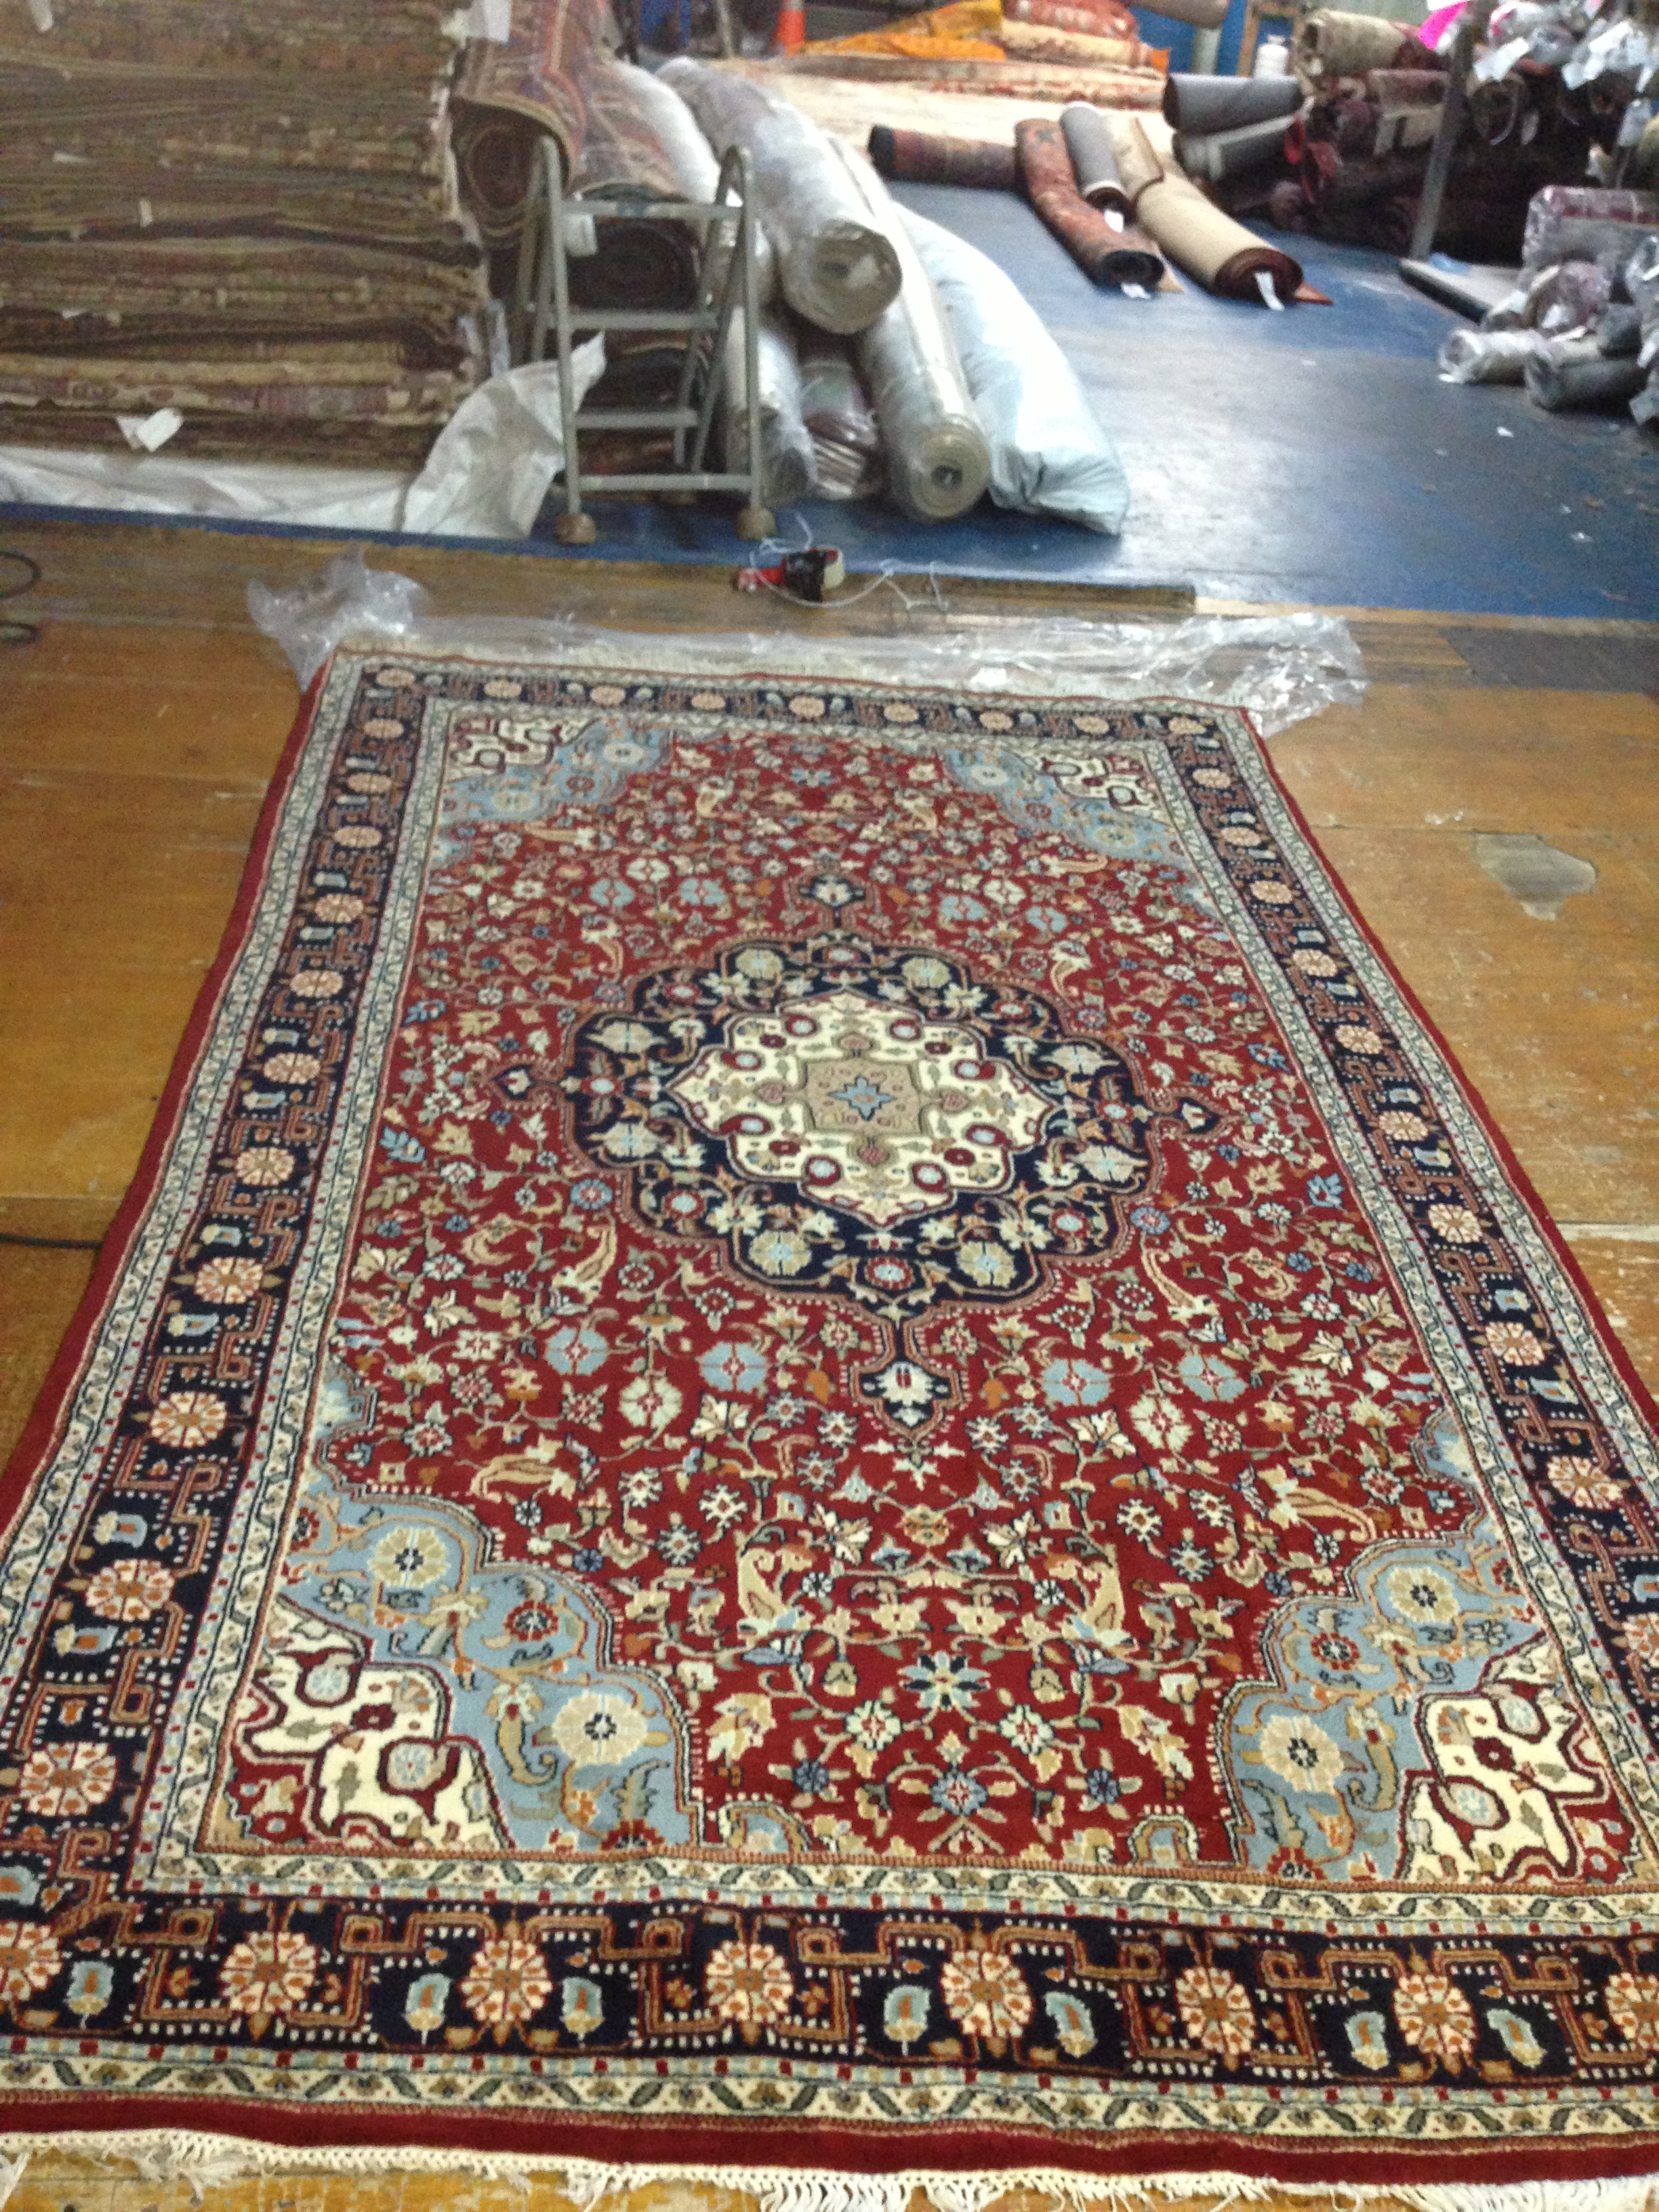 often clean experience cleaning rugs homes which have area rapid at types than are we in for more and visible rug rpiad on other flooring businesses extensive